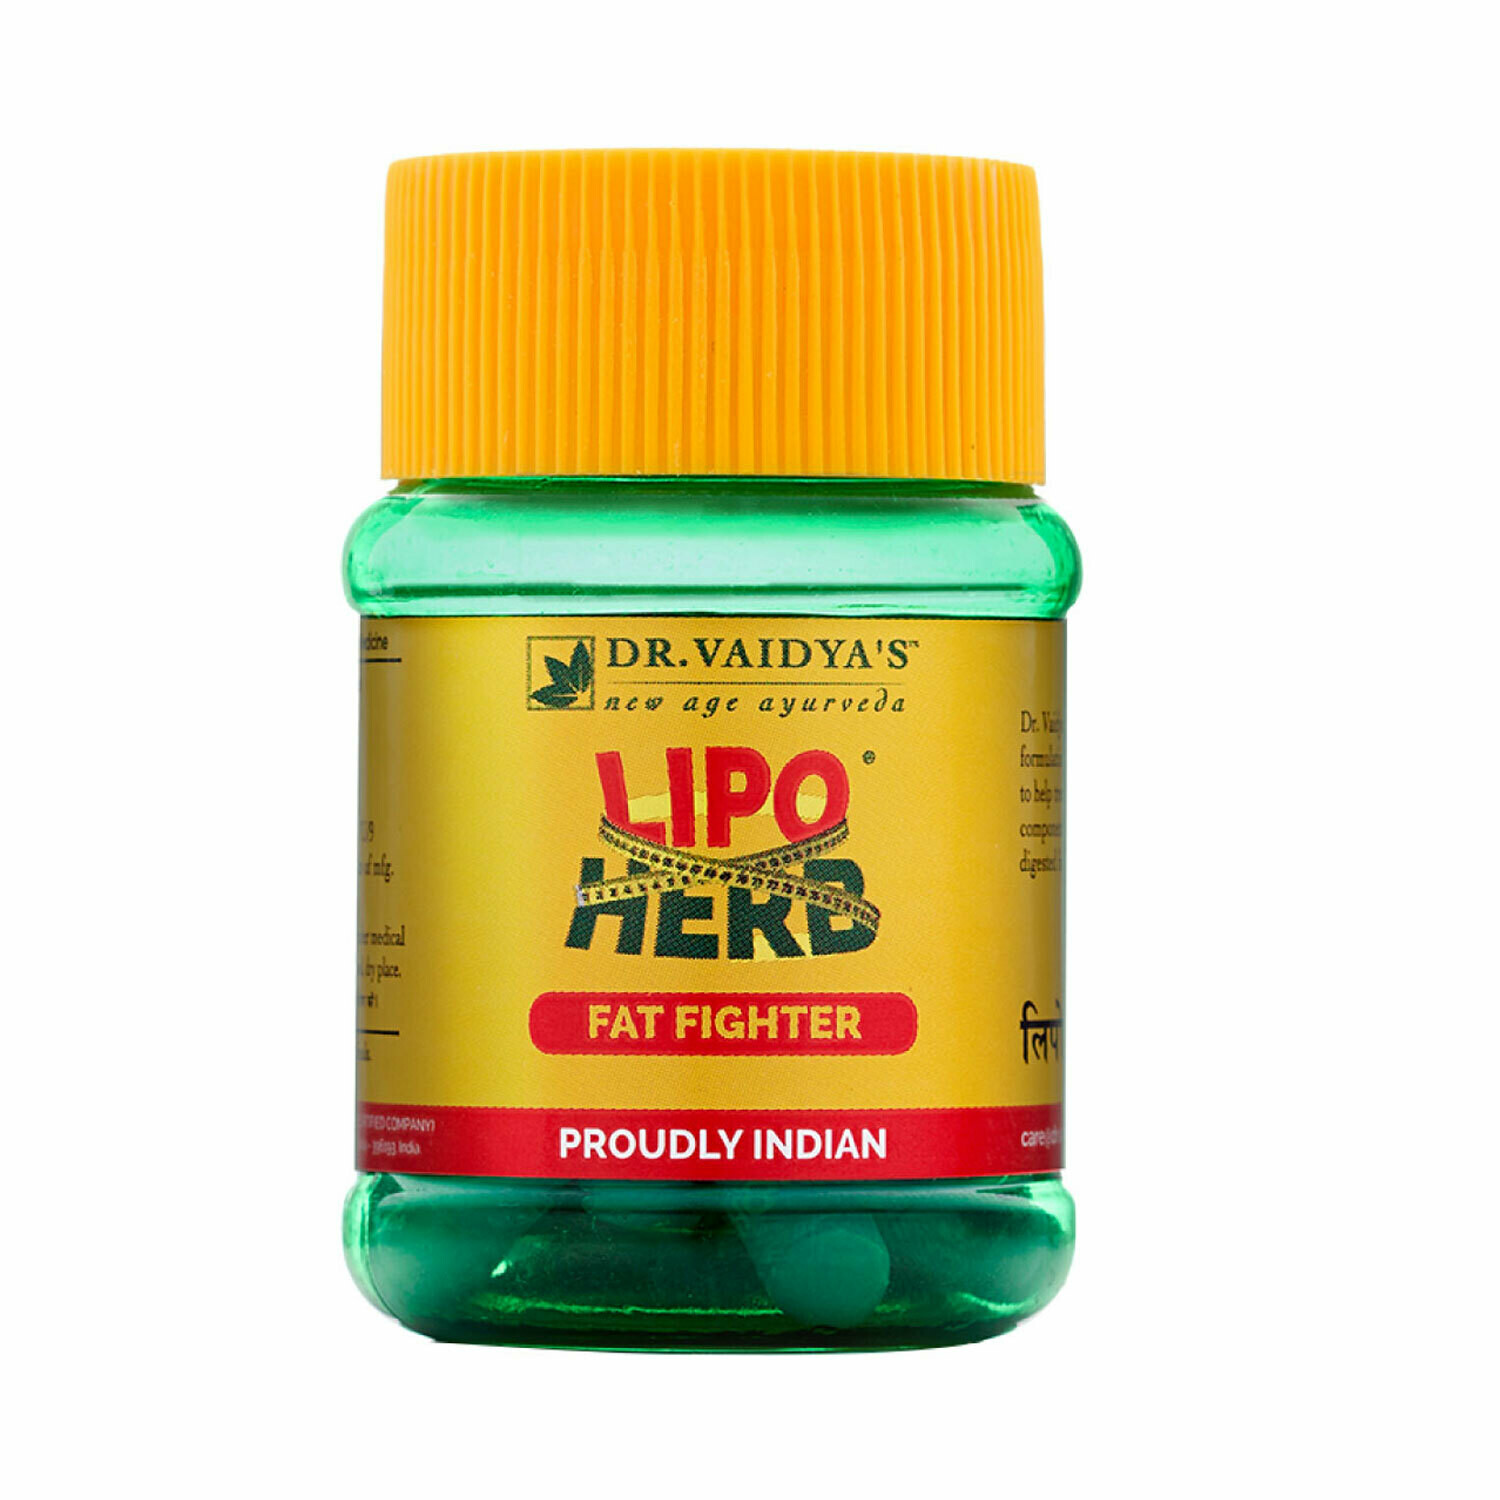 Dr. Vaidya's Lipoherb Capsules - Ayurvedic Treatment for Weight Loss and Cholesterol - Pack of 3